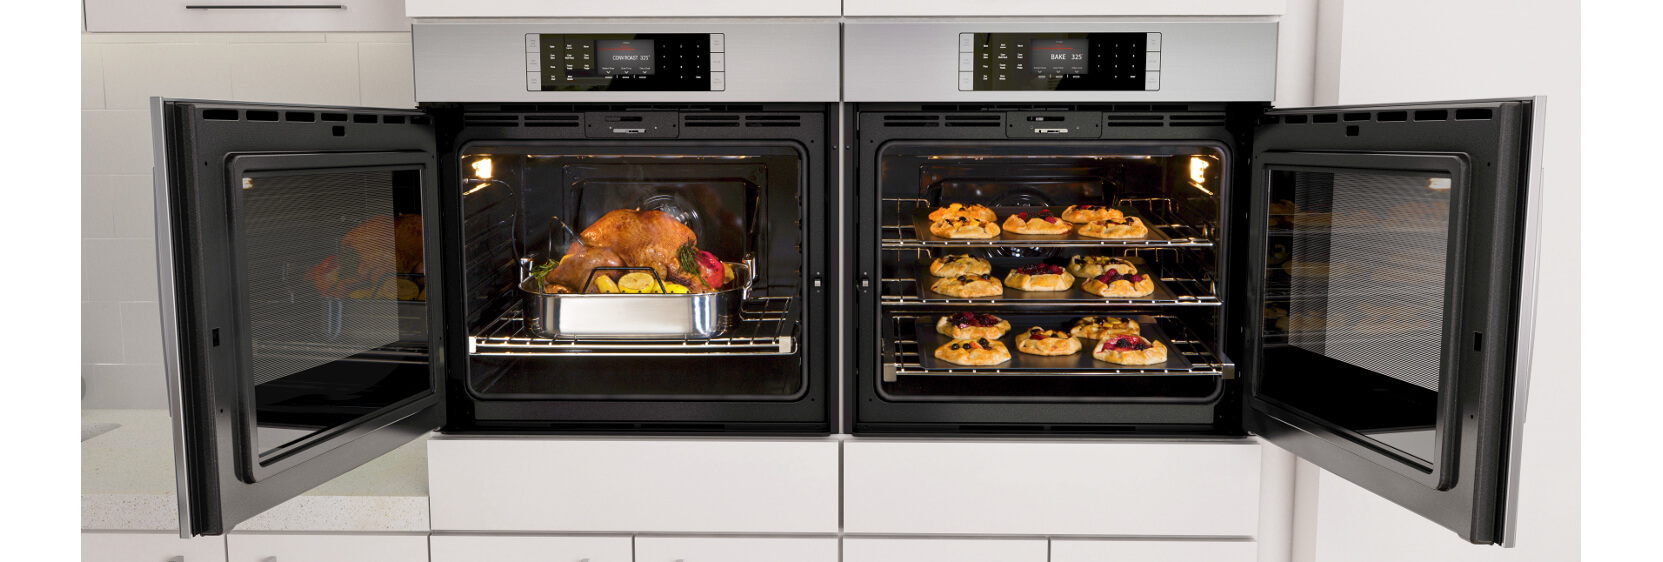 Bosch Wall Ovens With Side Opening Door